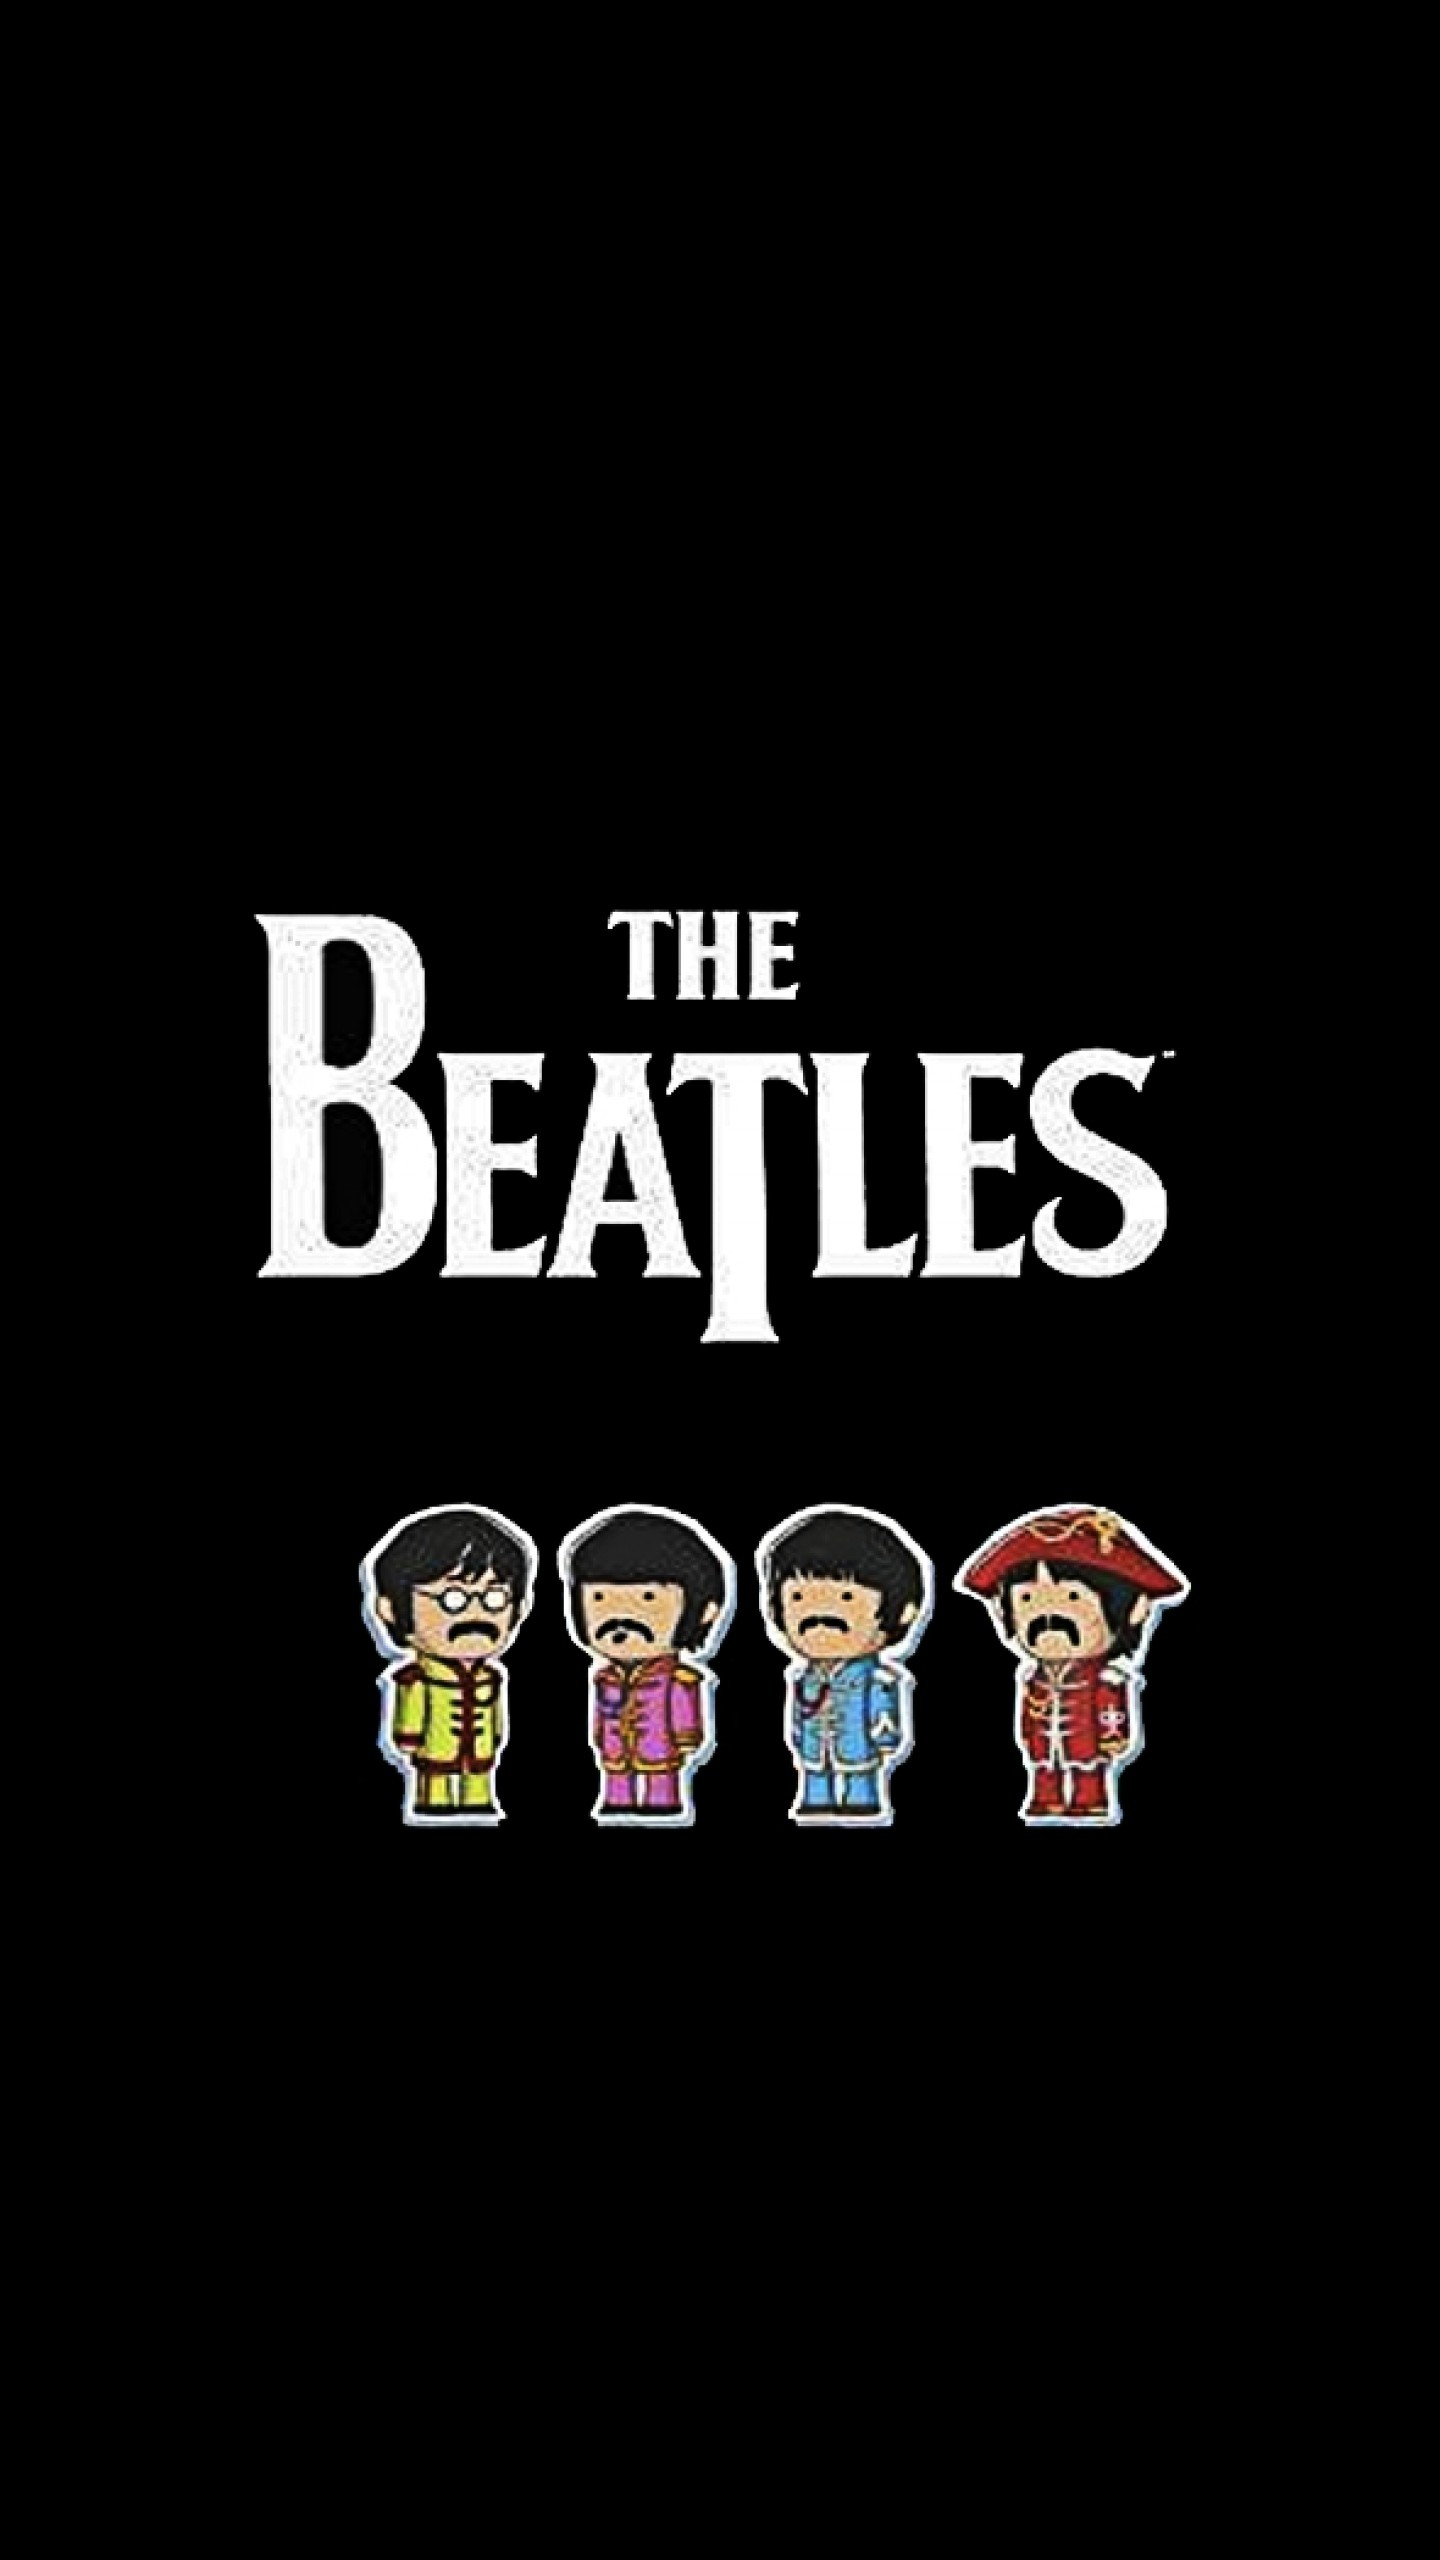 1440x2560 Preview Wallpaper The Beatles Name Members Picture Font